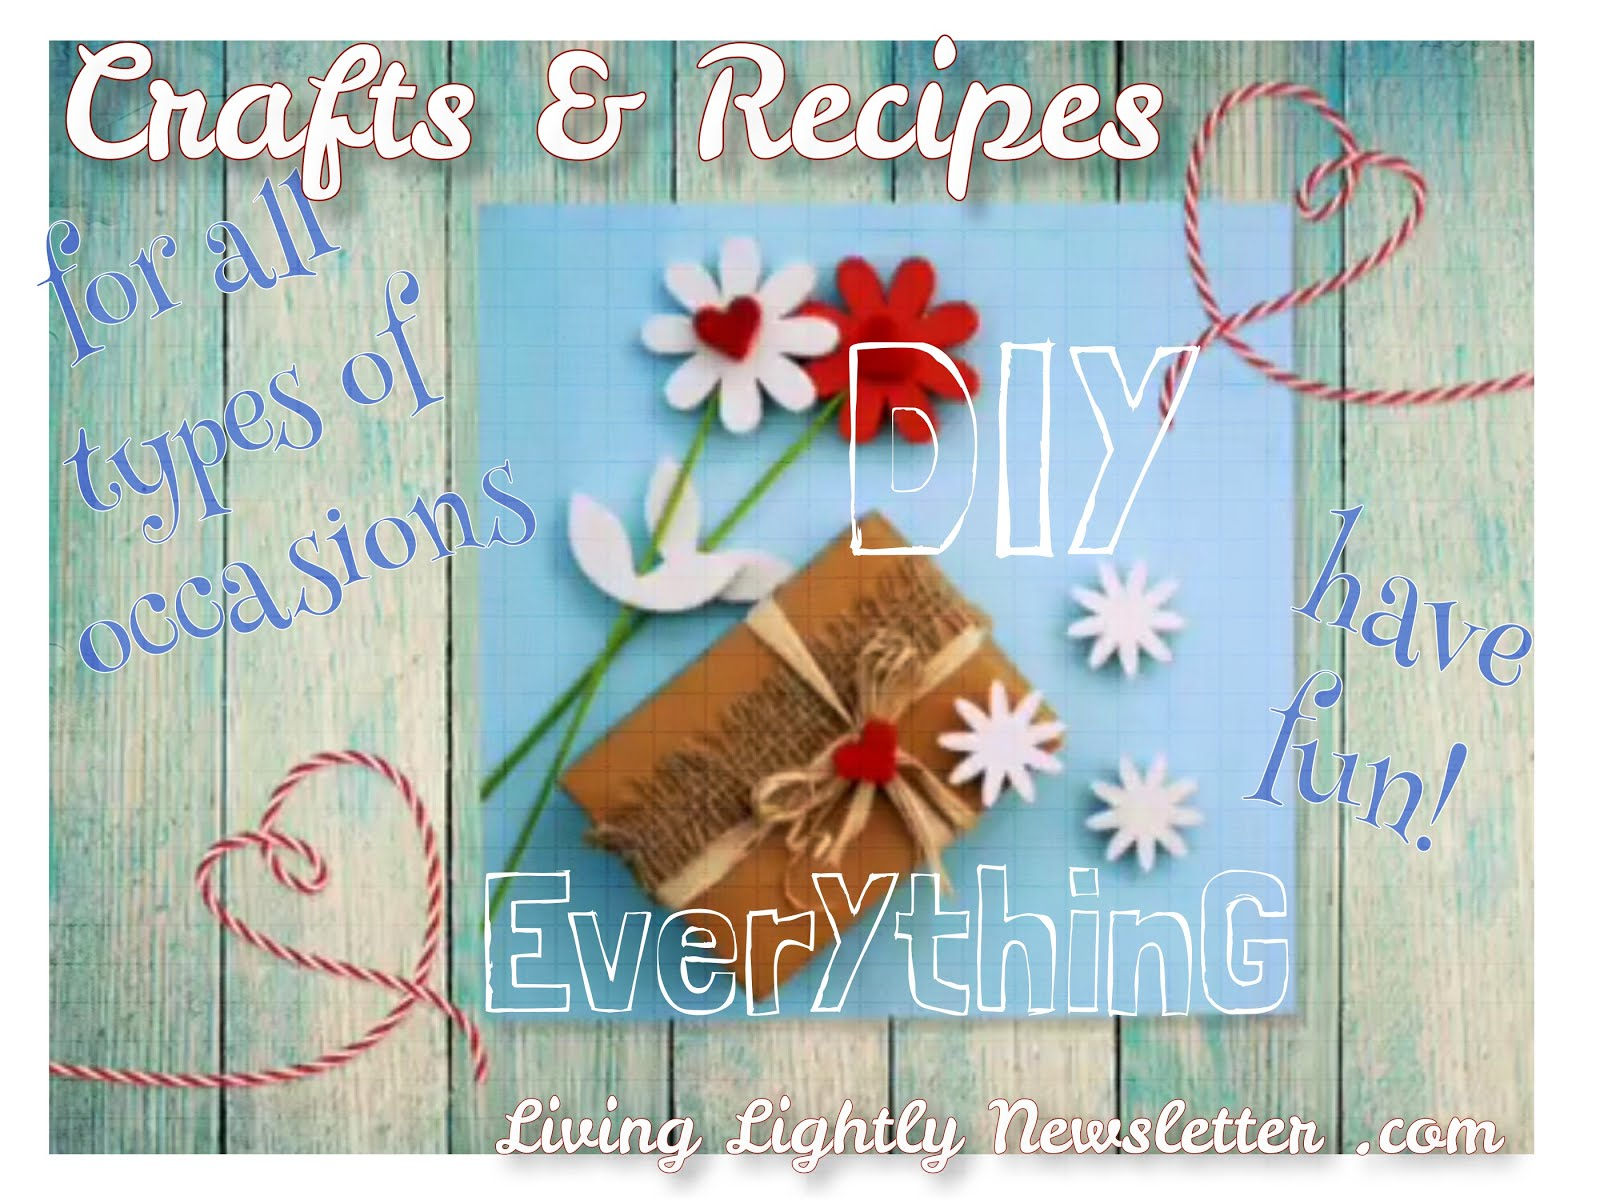 Manifesting, Crafts & Recipes!